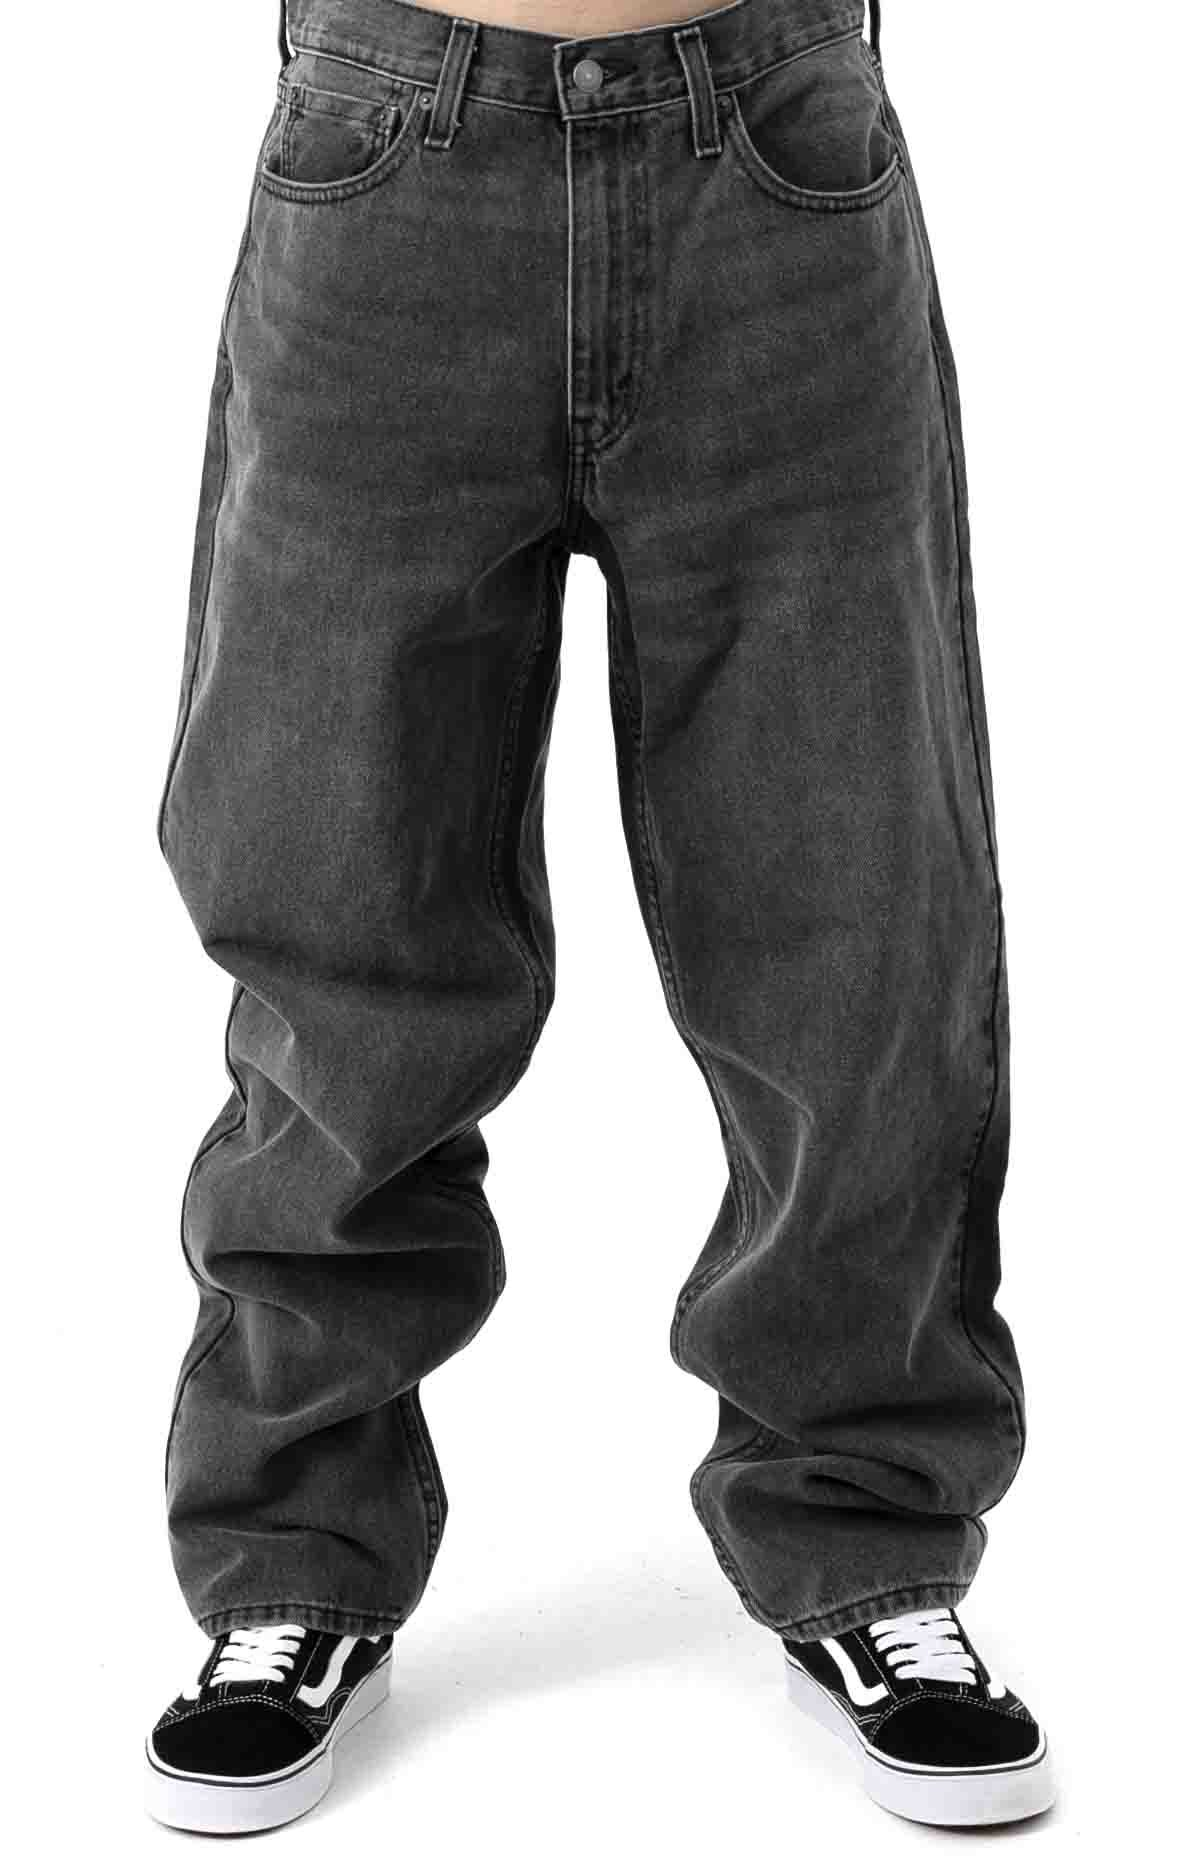 (29037-0000) Stay Loose Jeans - Soda Can  2